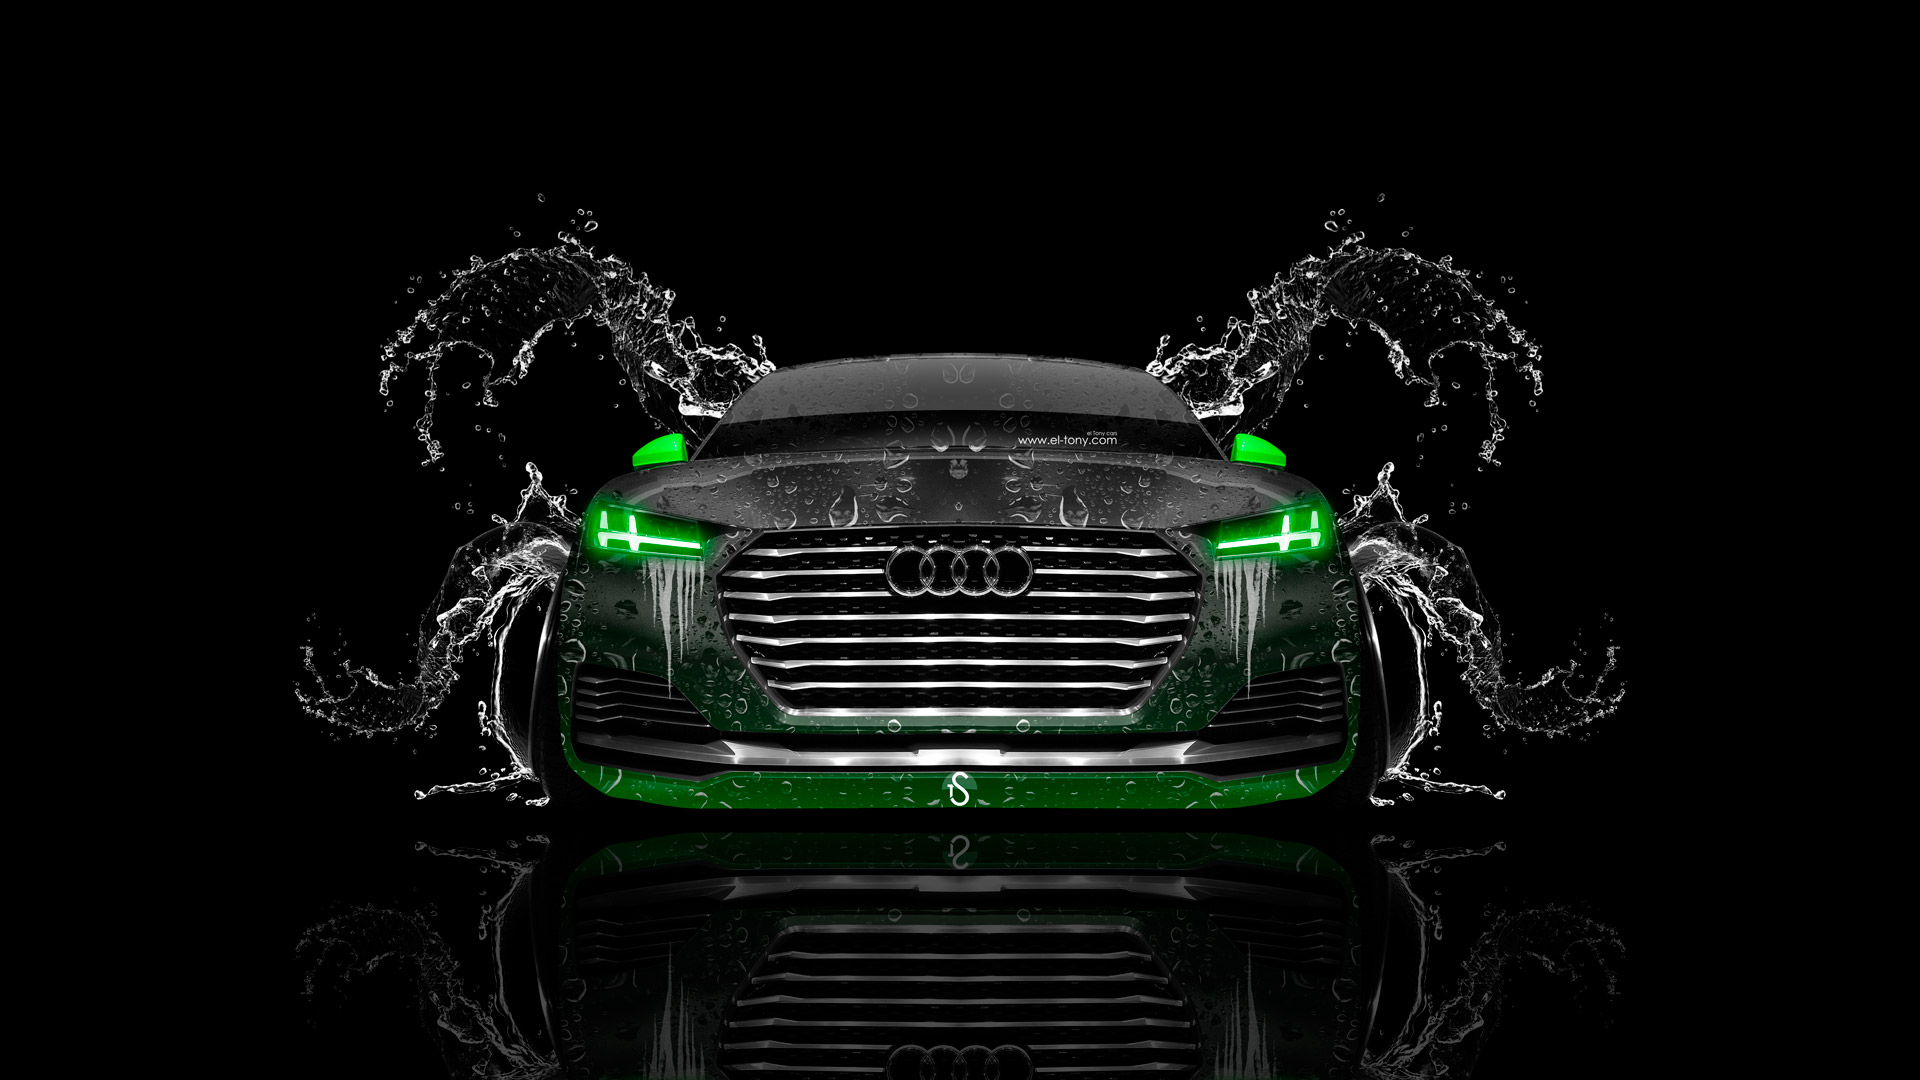 Audi Tt Offroad Front Water Car 2014 El Tony